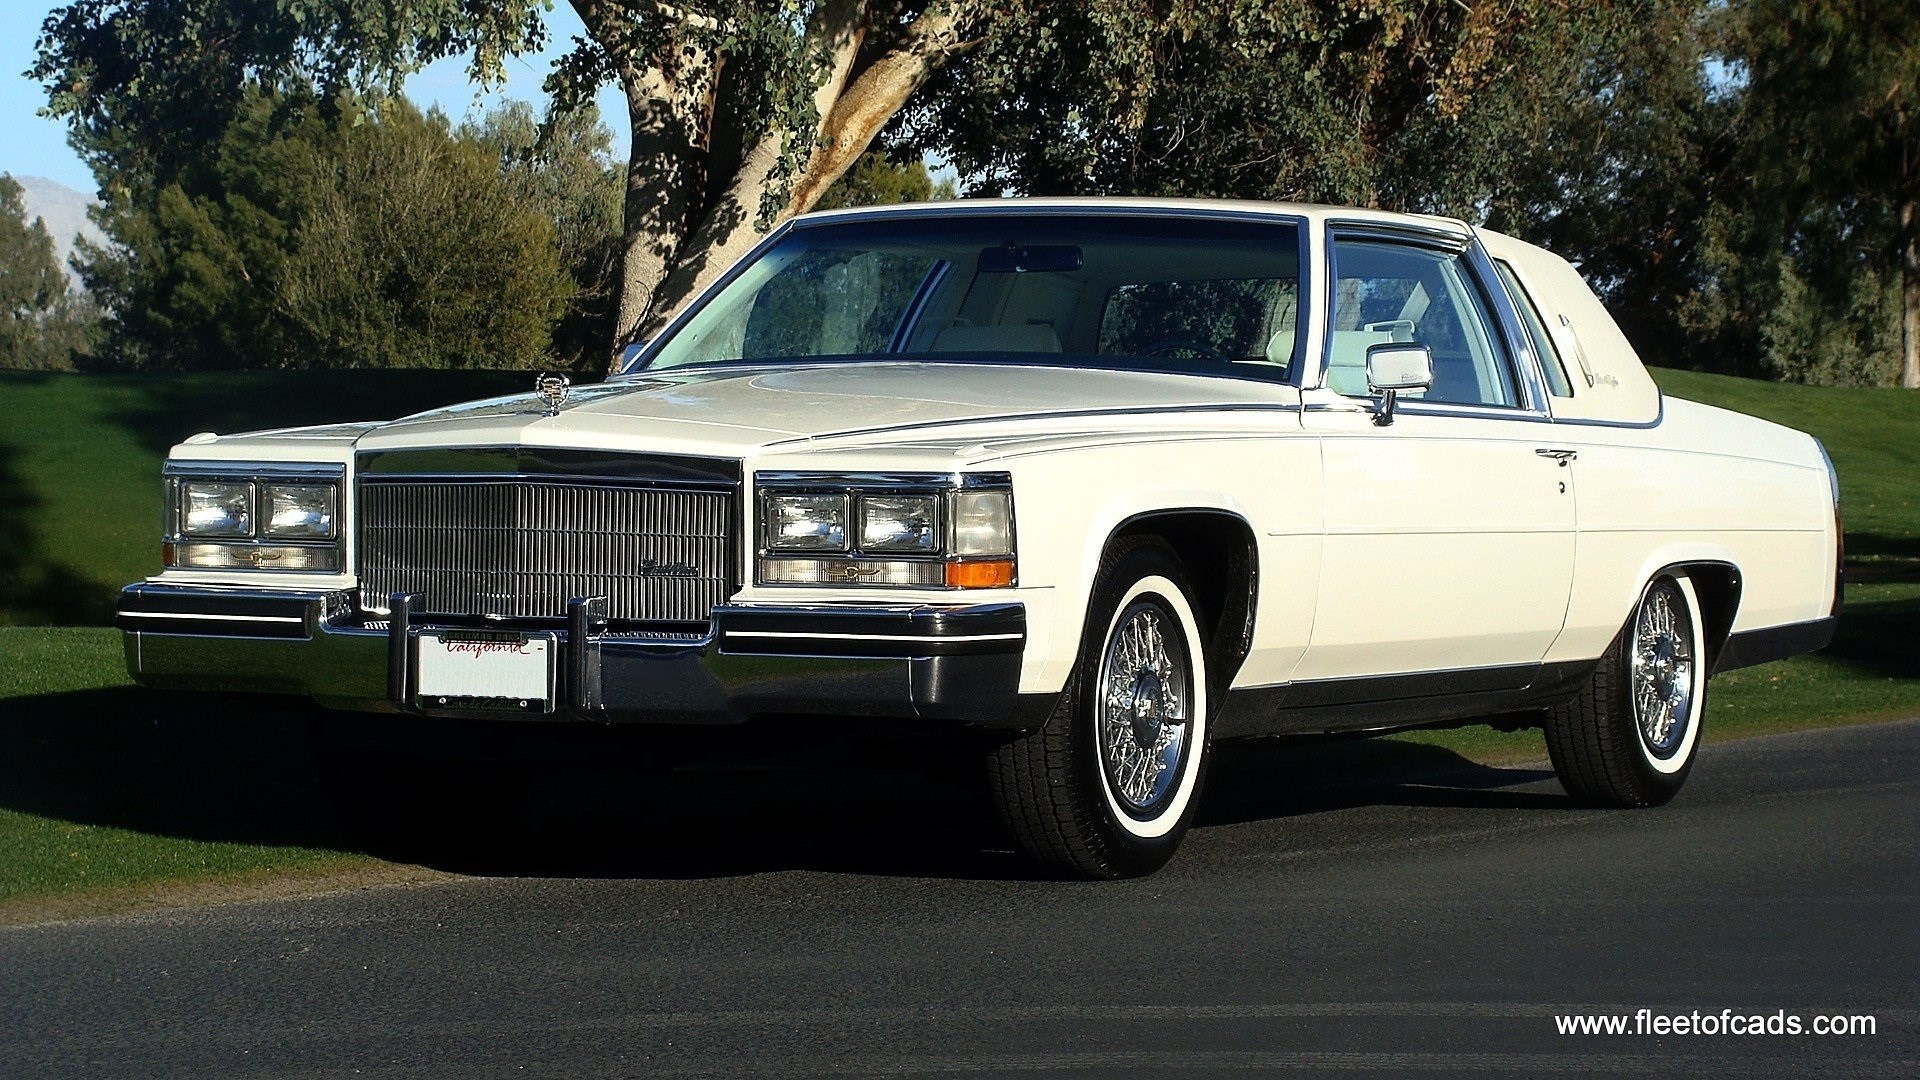 1985 Cadillac Fleetwood Brougham Coupe 43k Miles